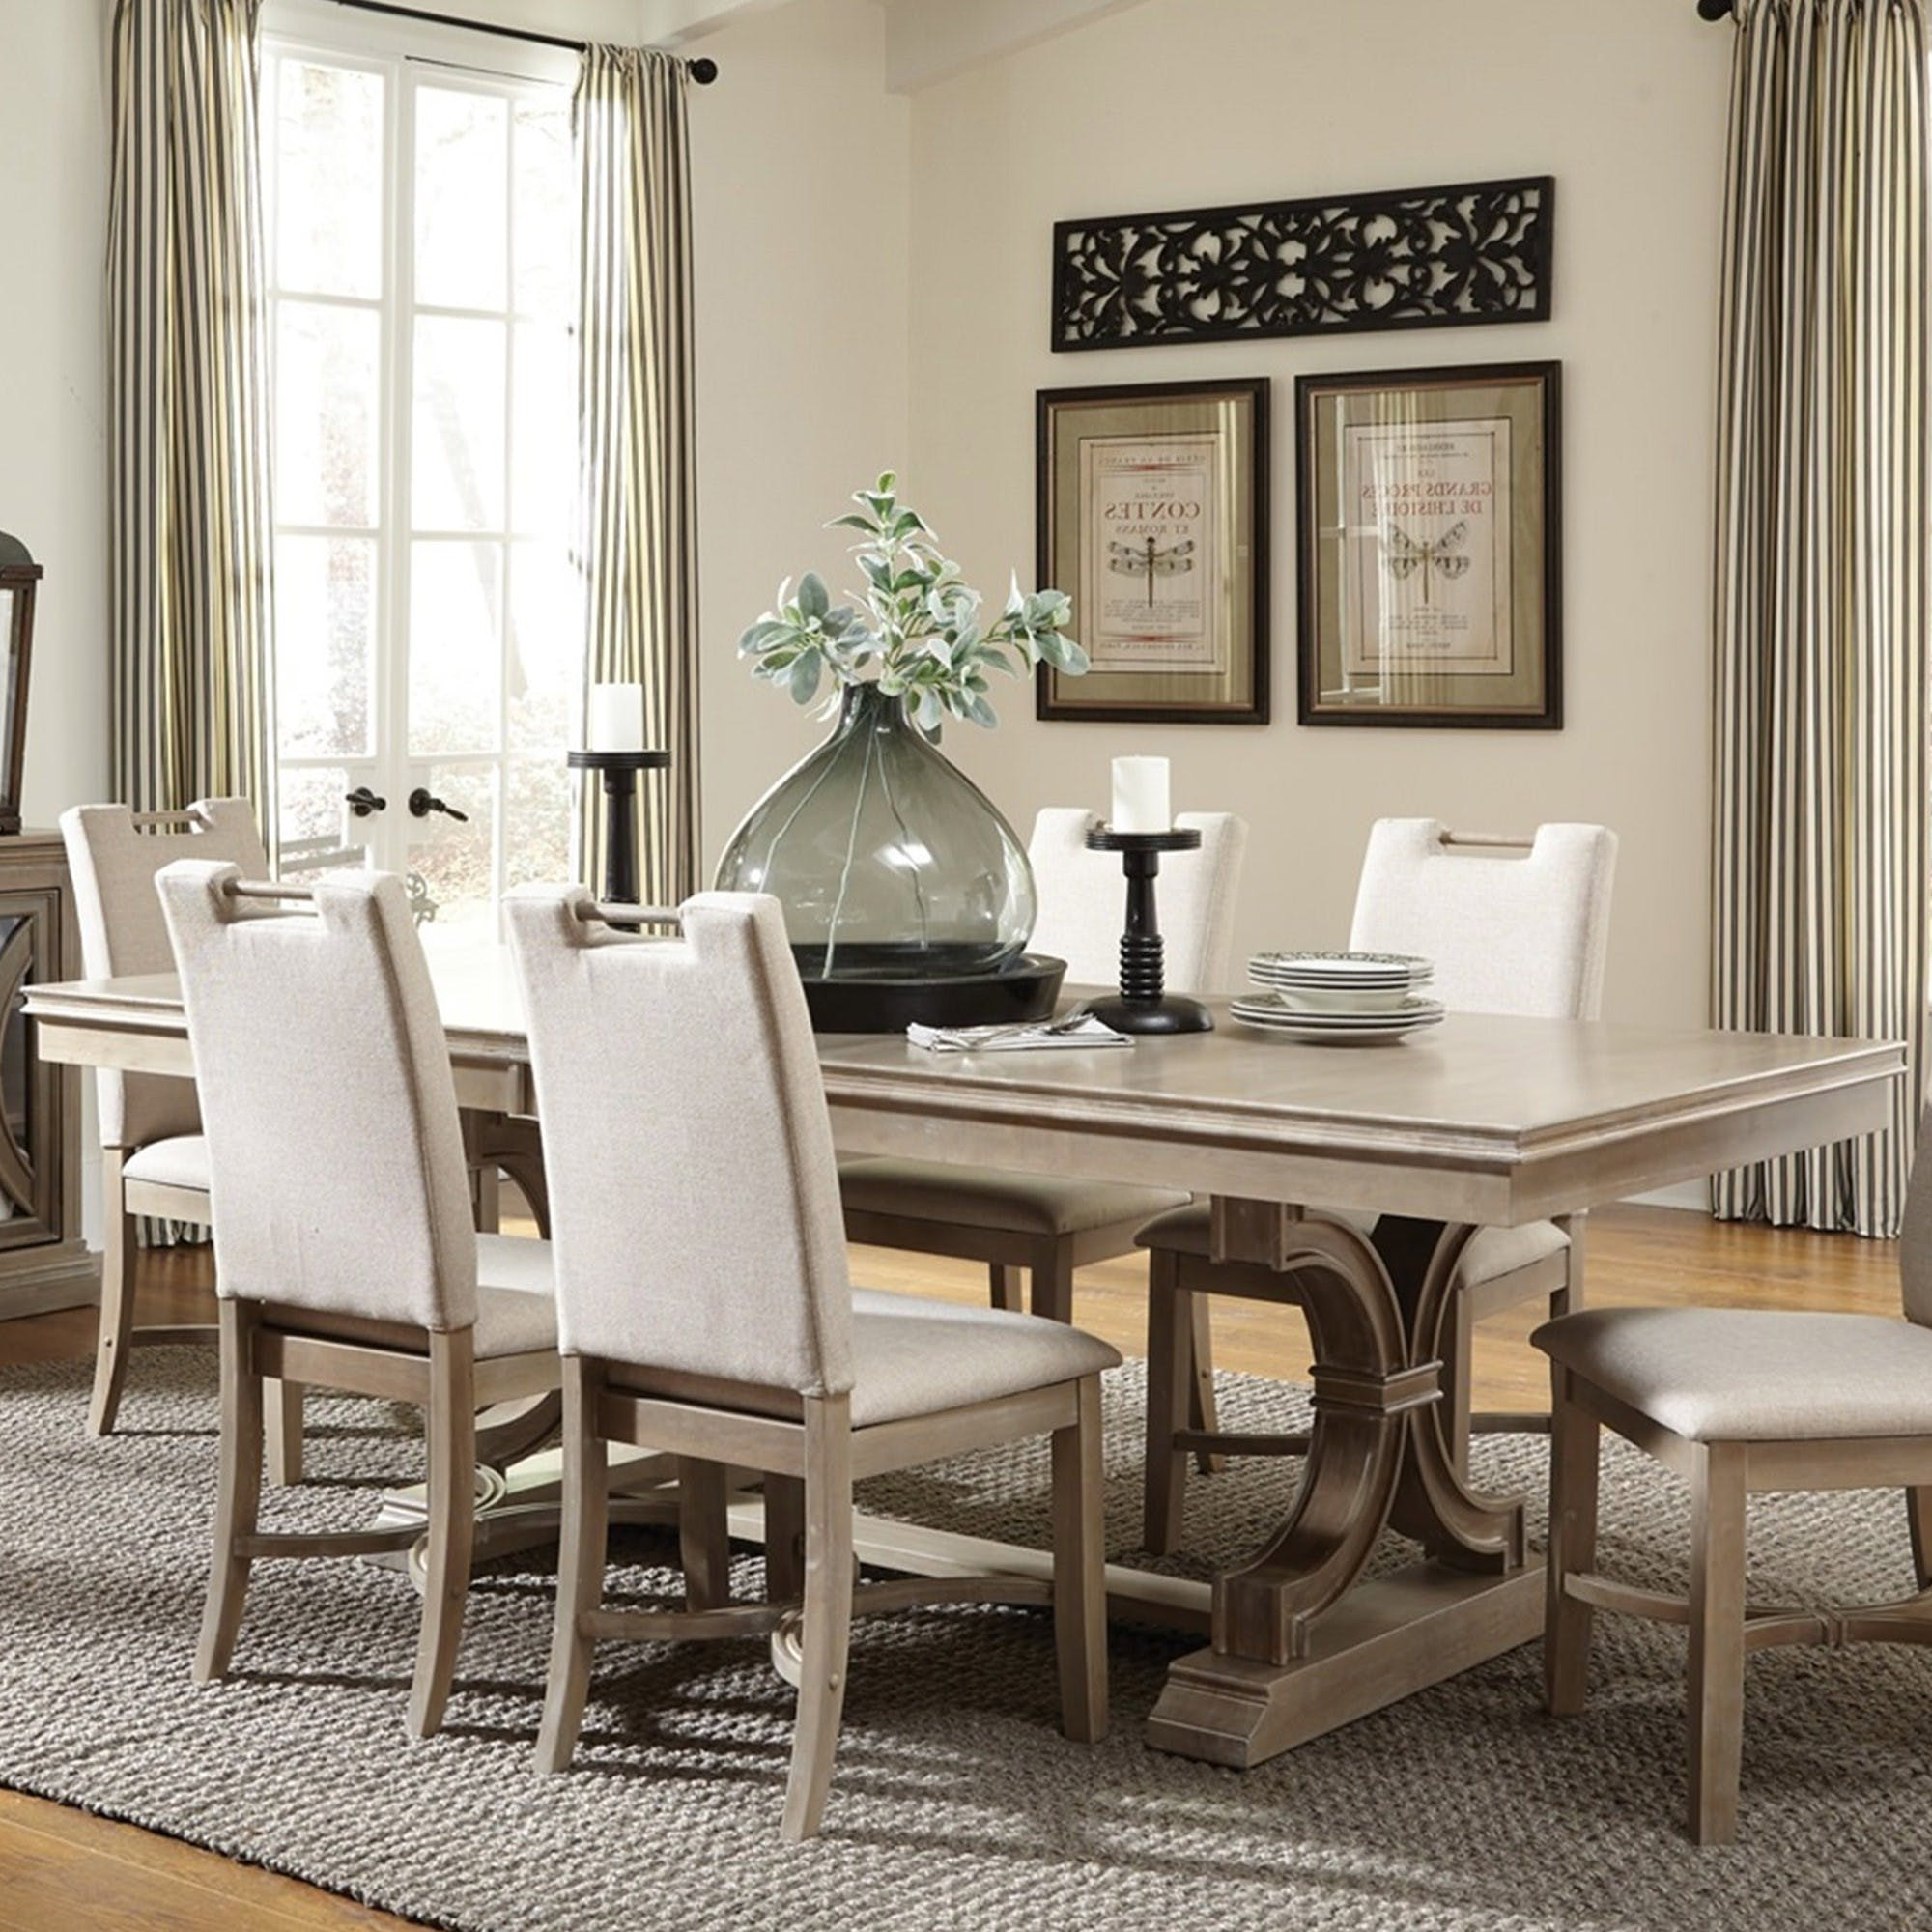 Transitional Rectangular Dining Tables Pertaining To Latest Sonoma Rectangular Dining Table – Bernie & Phyl's Furniture (View 11 of 21)